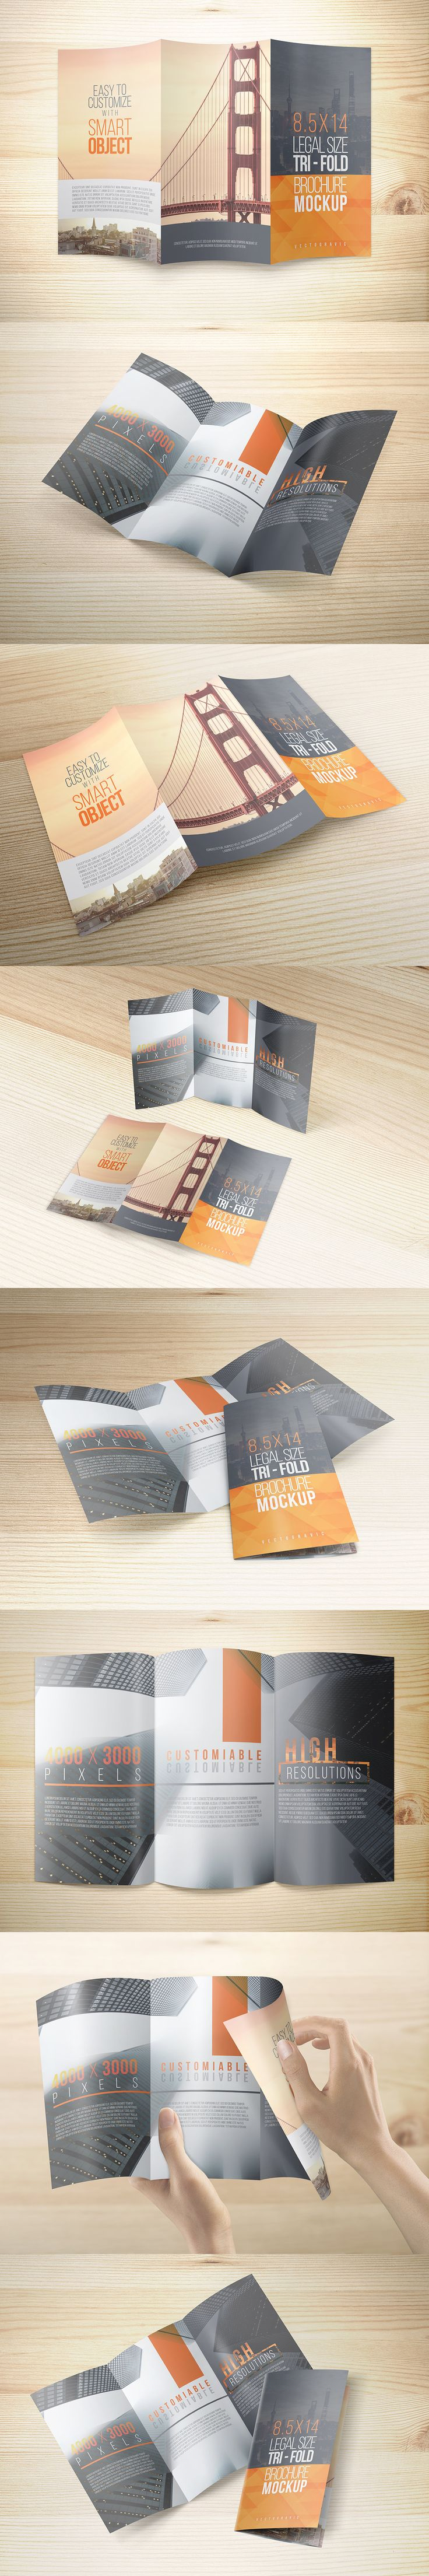 Another tri-fold flyer/brochure mockups provided in legal size (8.5x14). Simple and usable for print design project showcase or for display in your printing service website. This package comes with eight different PSD views of angles and easily you can edit the mockups via smart object feature. Please refer to the help PDF file included in the zip file.